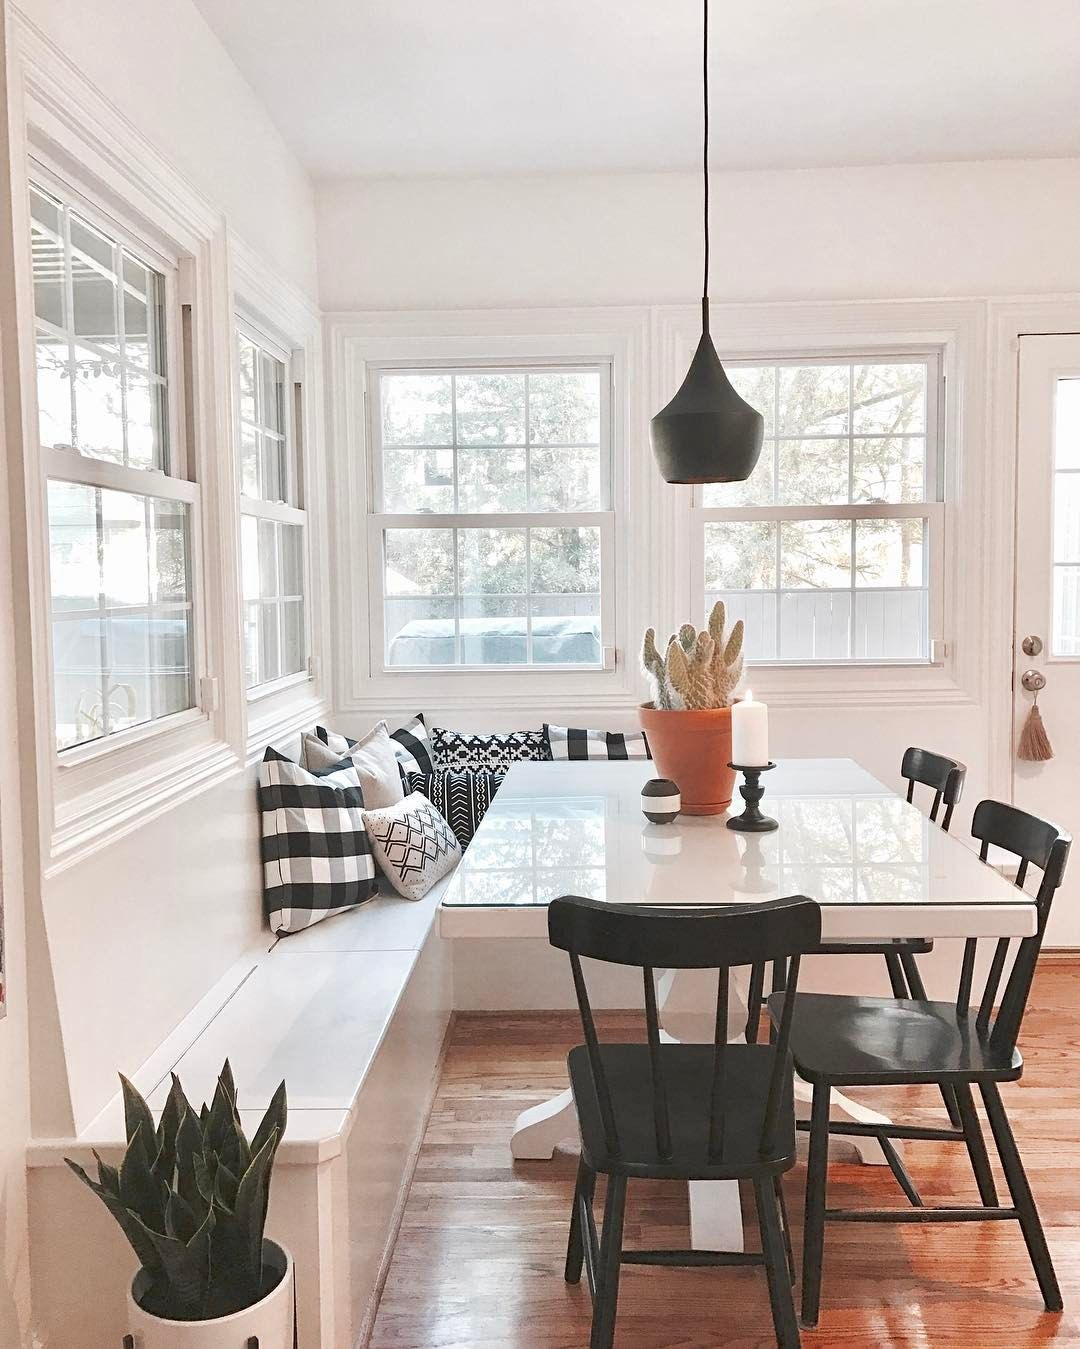 15 Adorable Breakfast Nook Design Ideas For Awesome Mornings